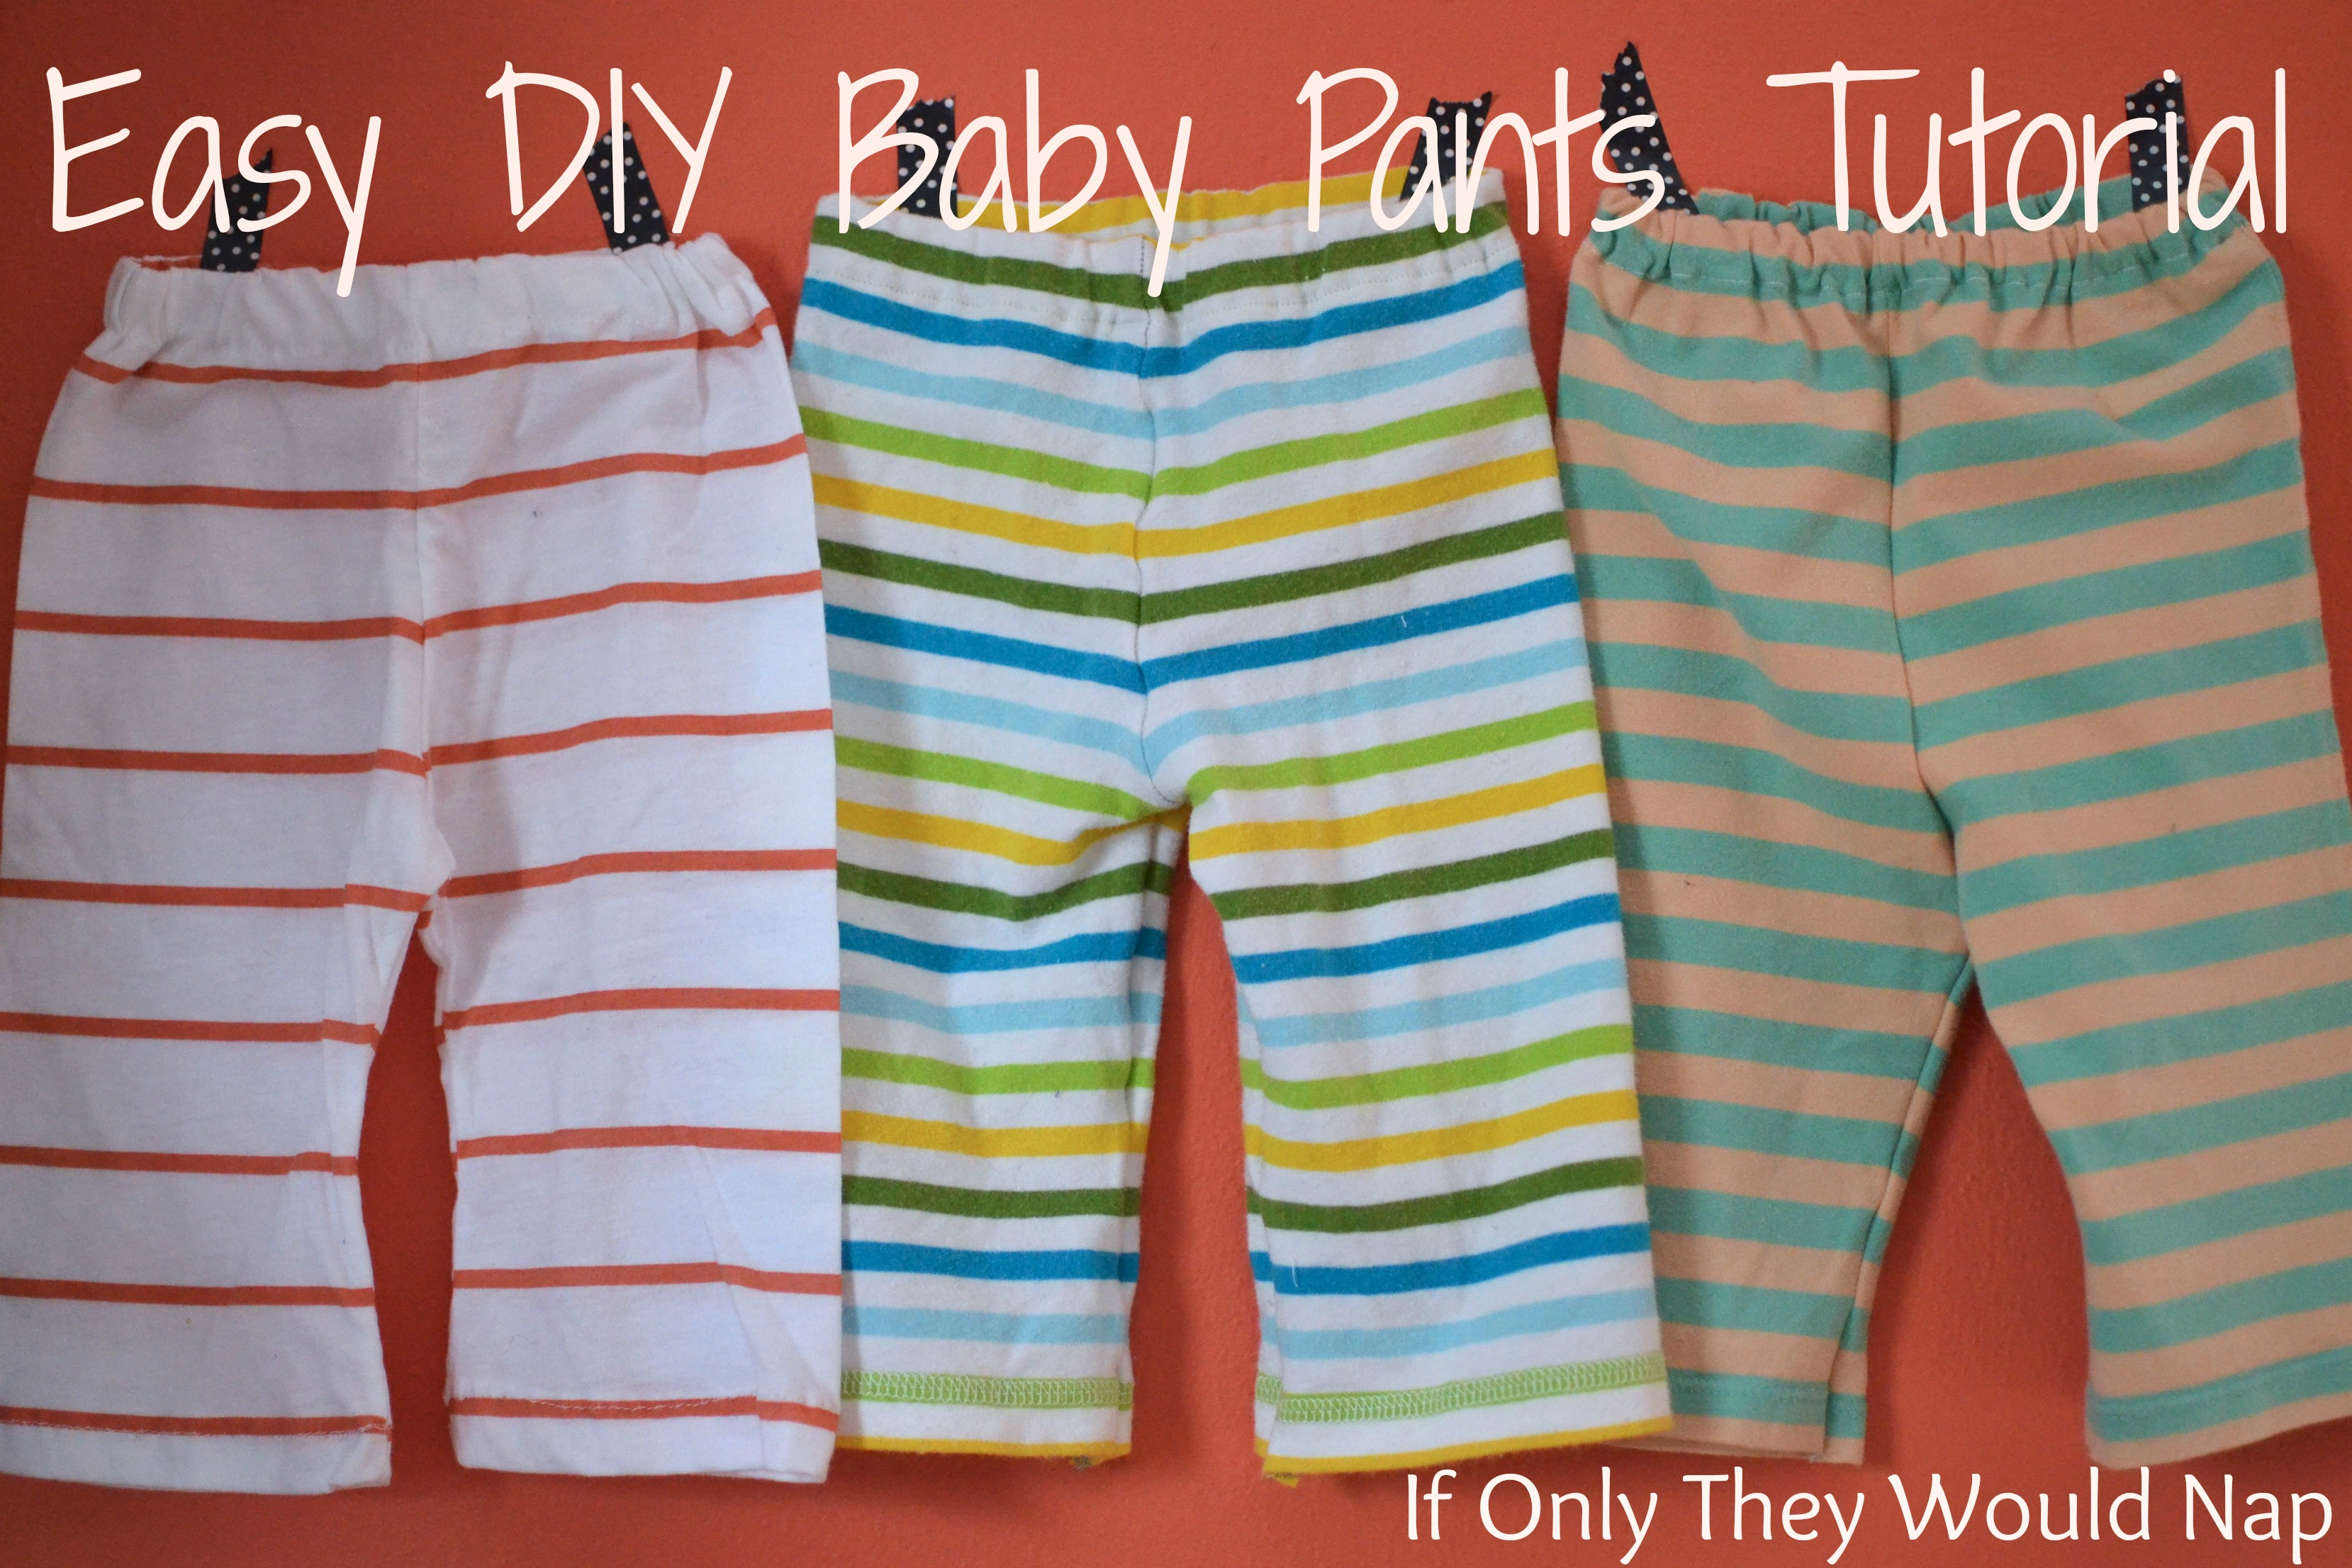 Easy DIY Baby Pants Tutorial | If Only They Would Nap